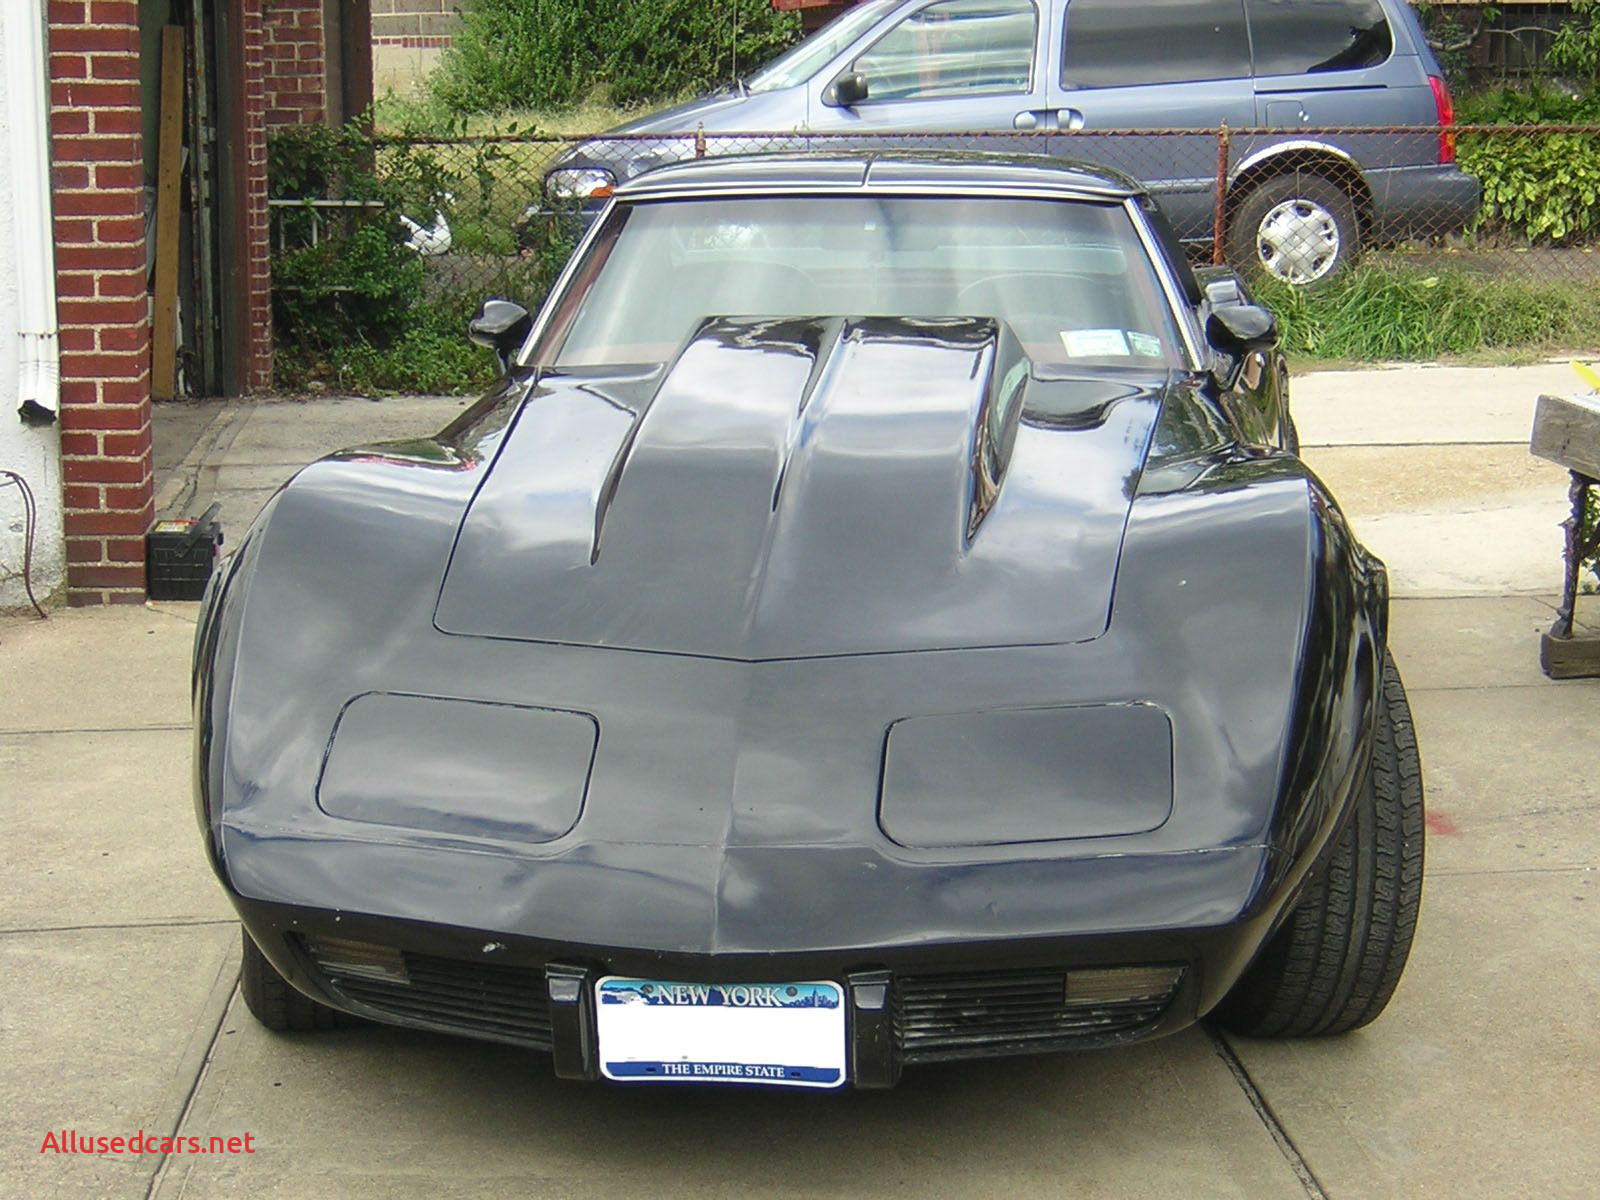 Used Cars for Sale 500 or Less Luxury Vettehound Over 500 Used Corvettes for Sale Corvette for